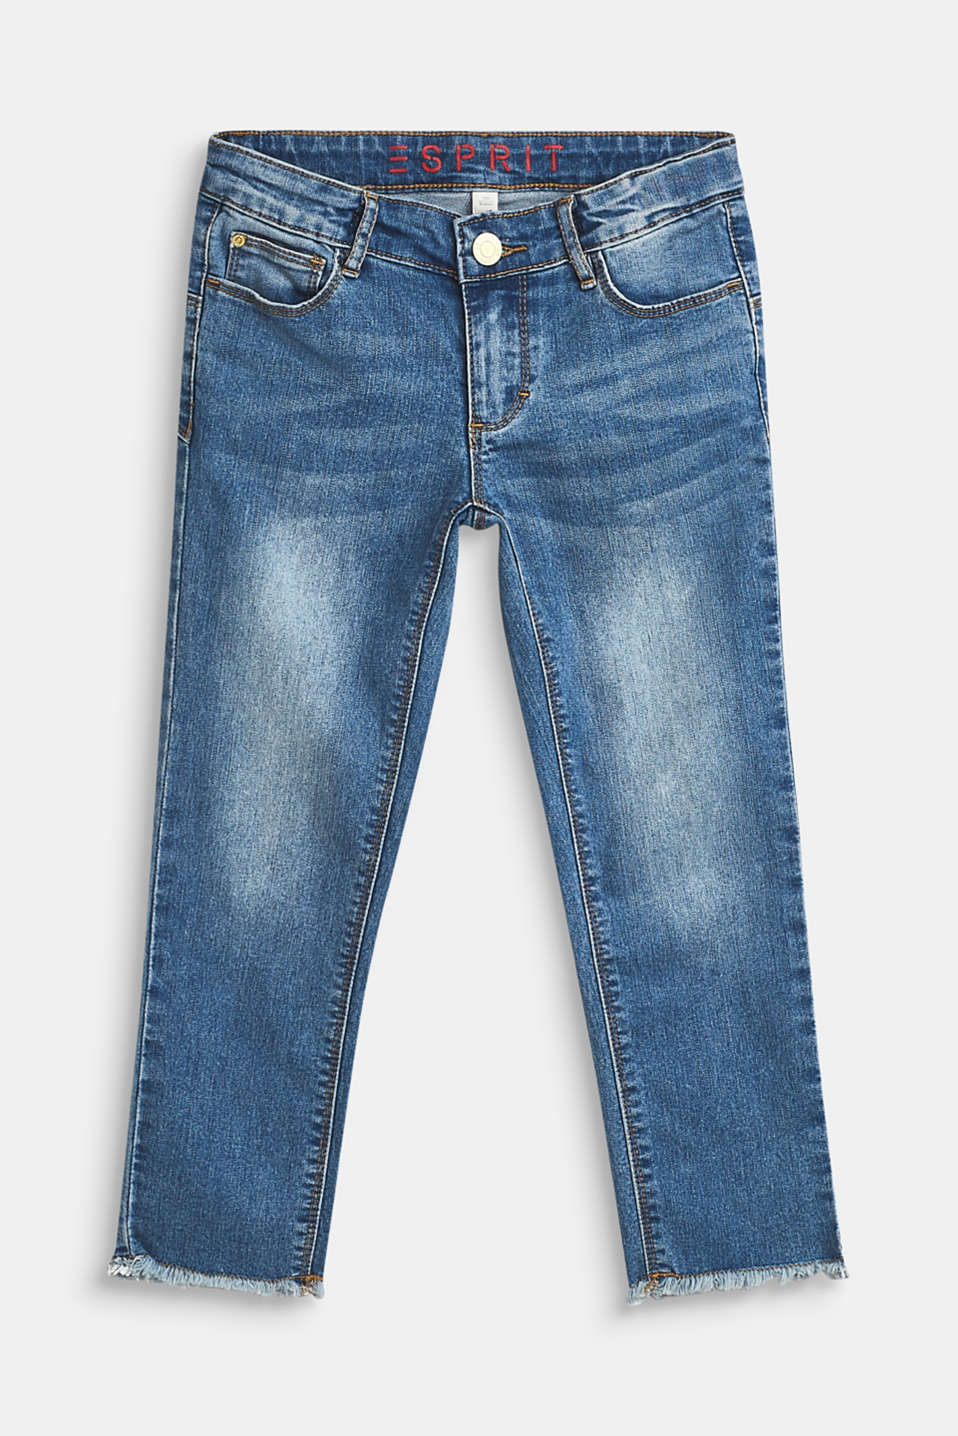 Esprit - Stretch capri jeans with frayed hems